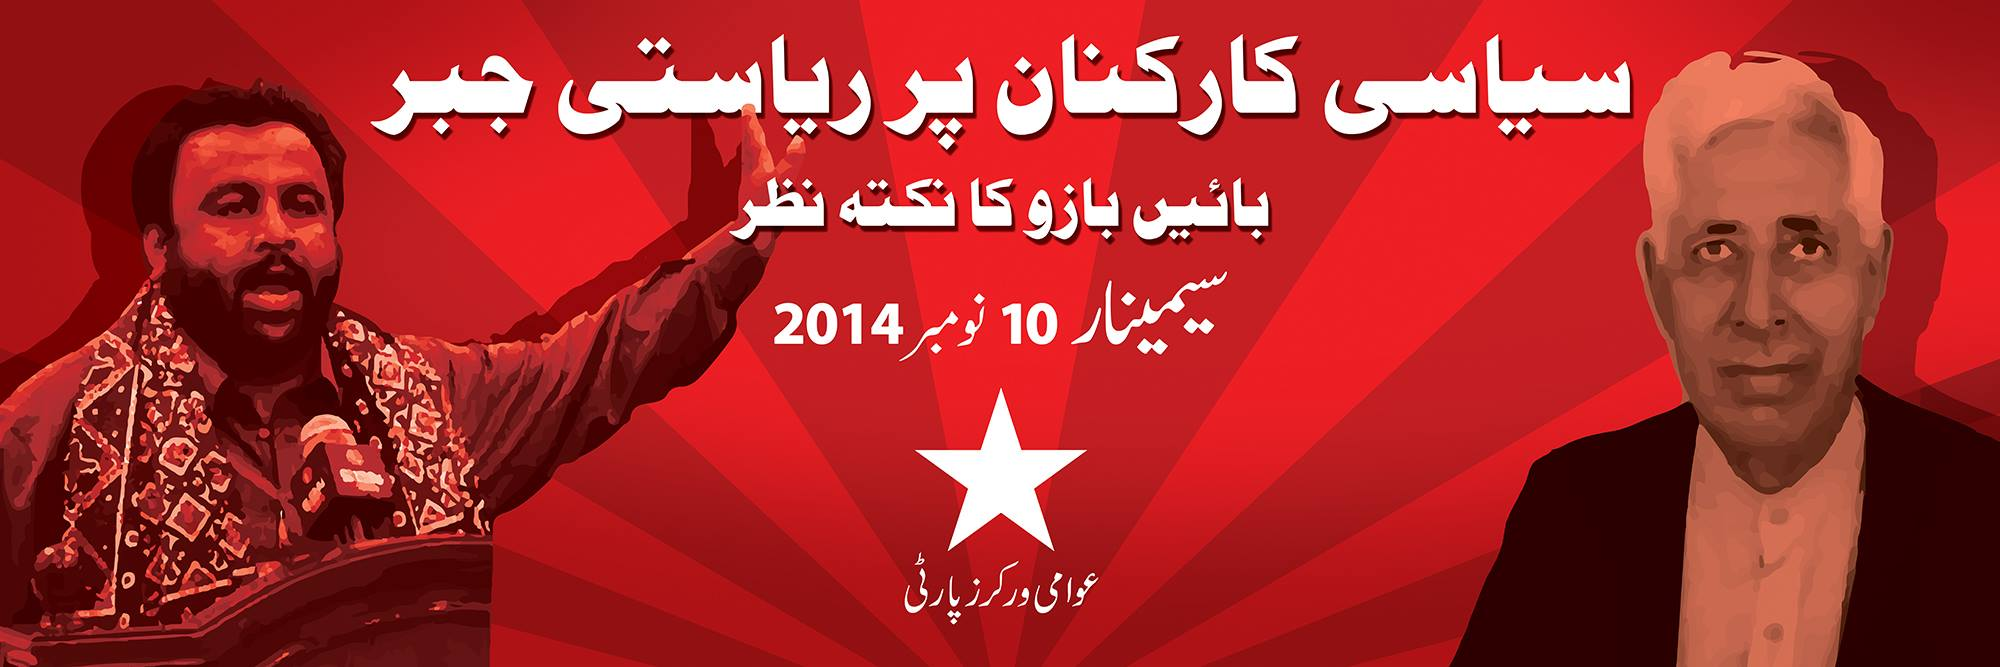 AWP denounces state's use of violence against progressive workers and intellectuals